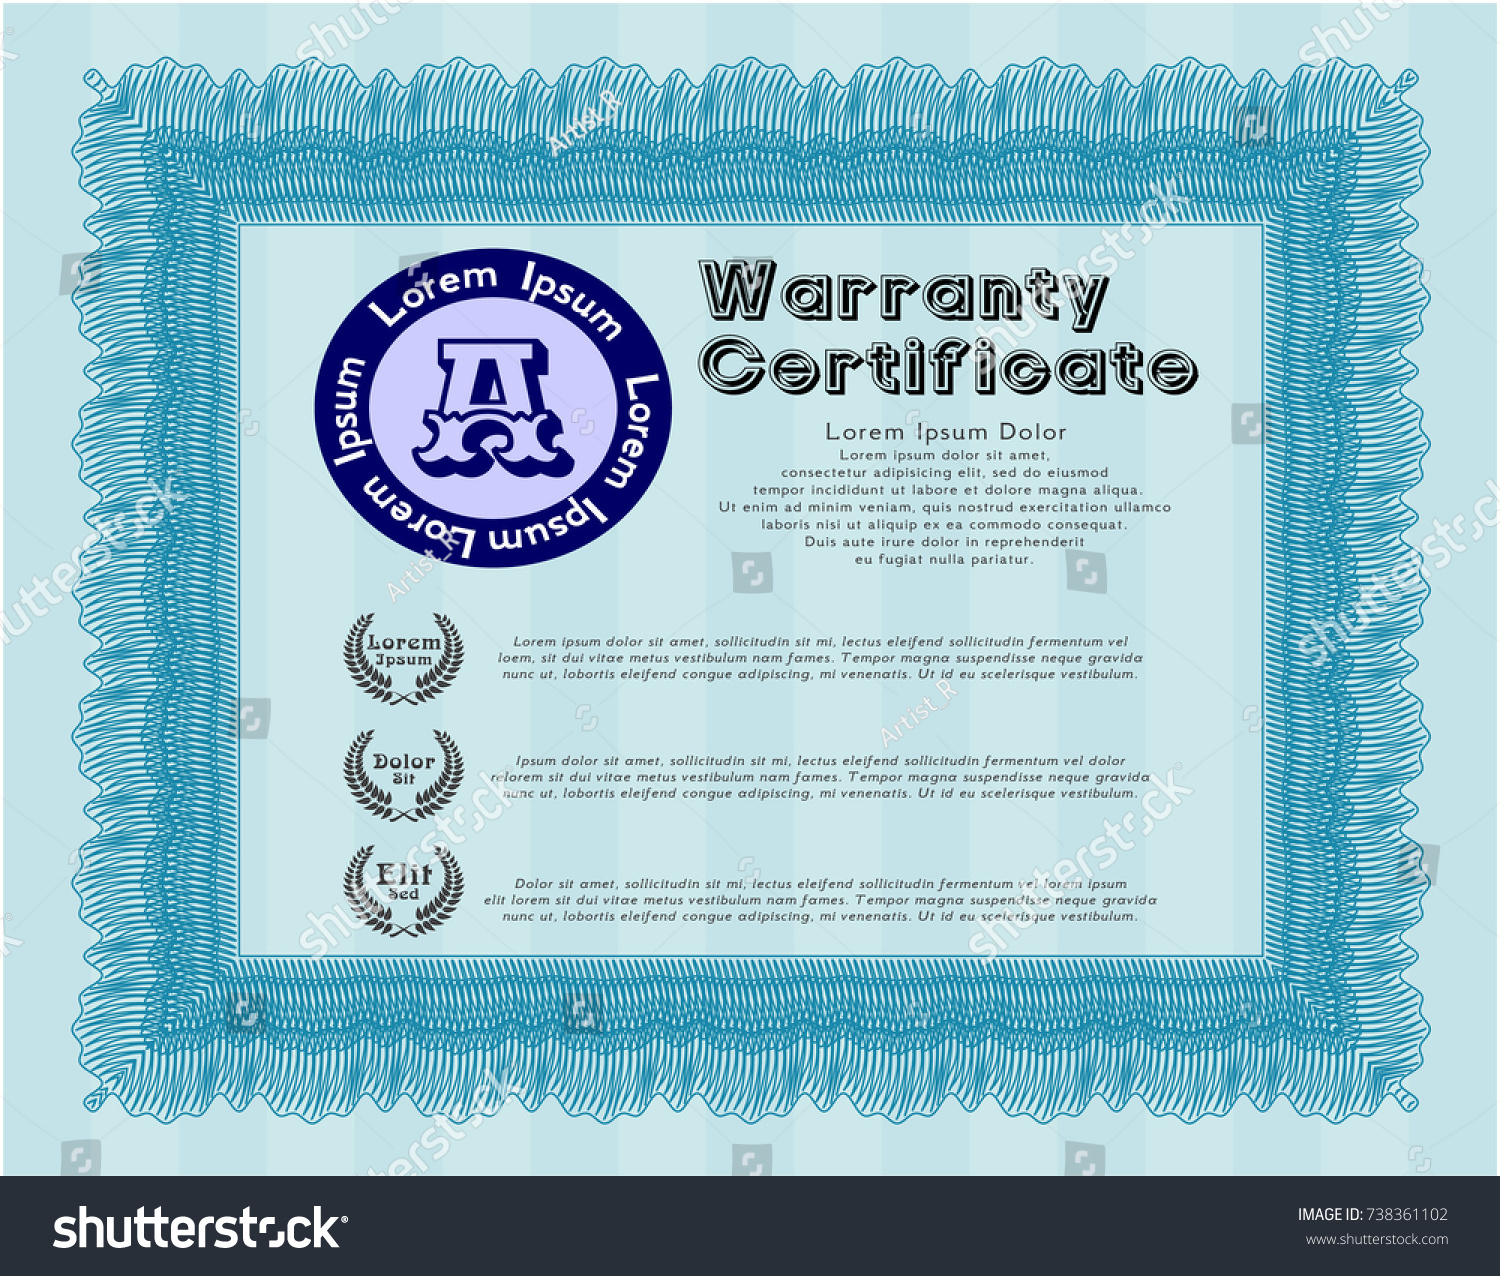 Certificate of authenticity template for publisher image certificate guarantee template images certificate design and xflitez Image collections